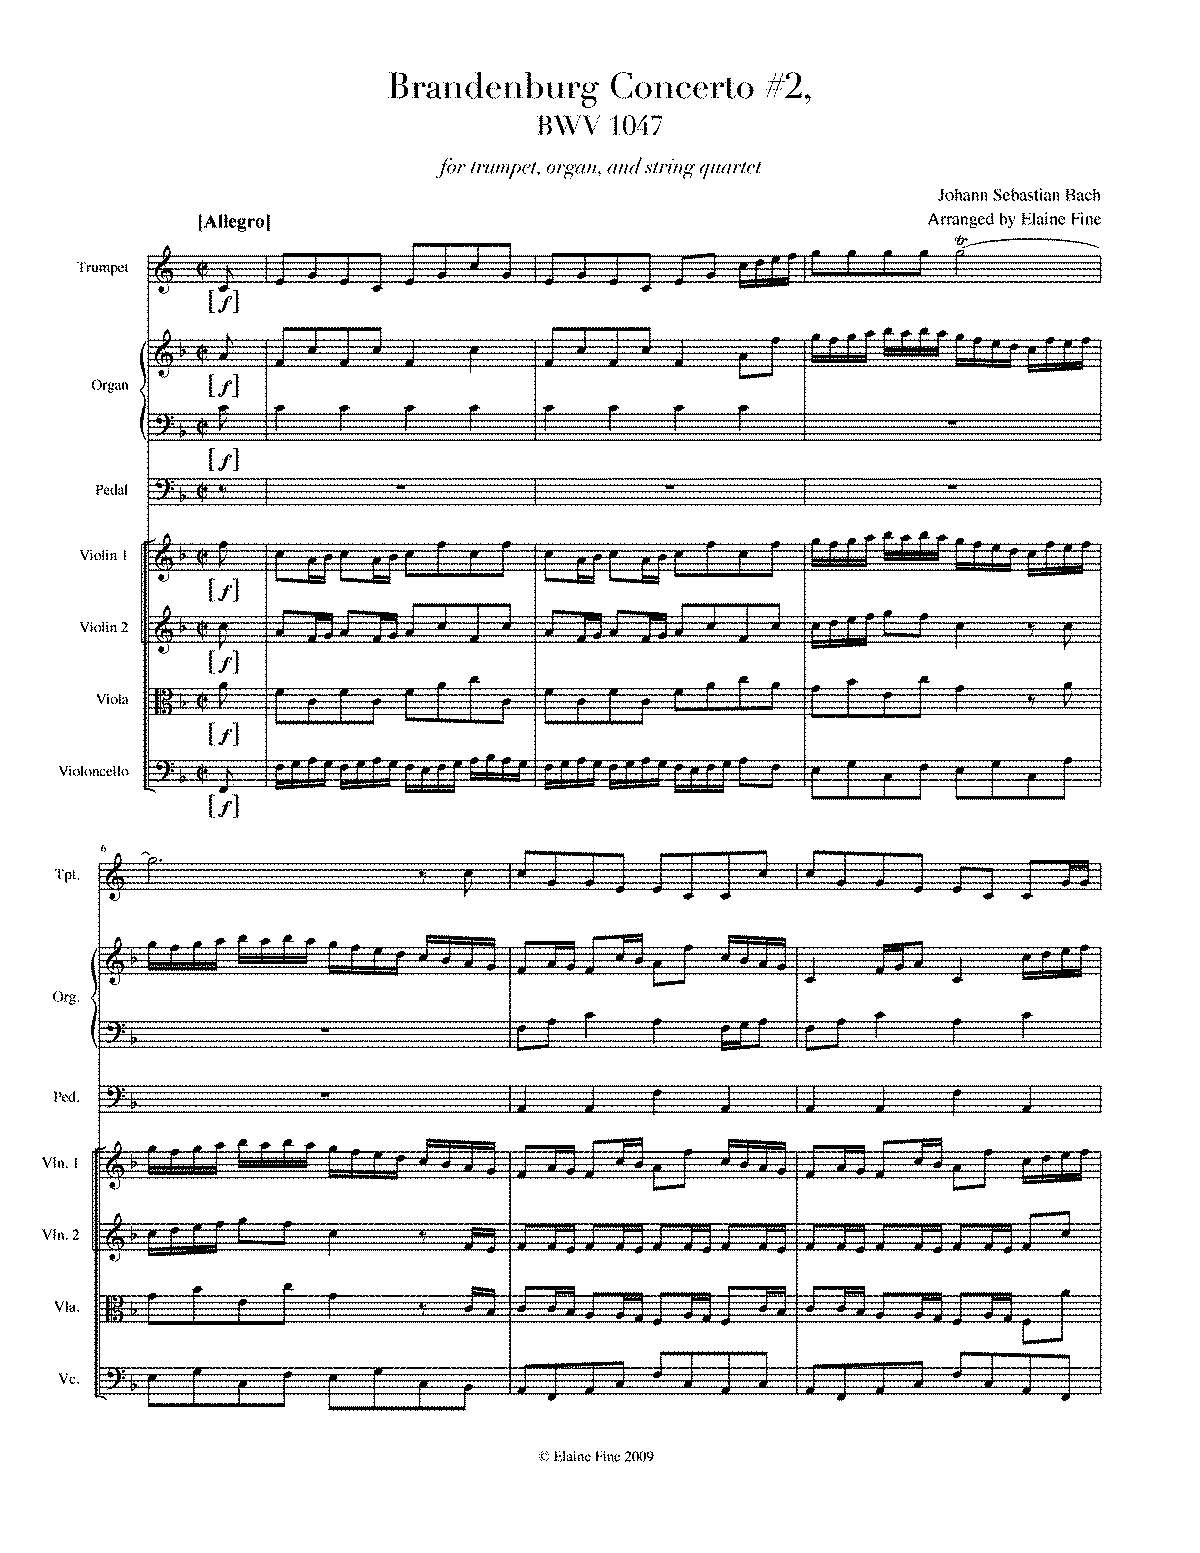 WIMA.edbf-Bach BWV 1047 for Trumpet, Organ, and String Quartet.pdf